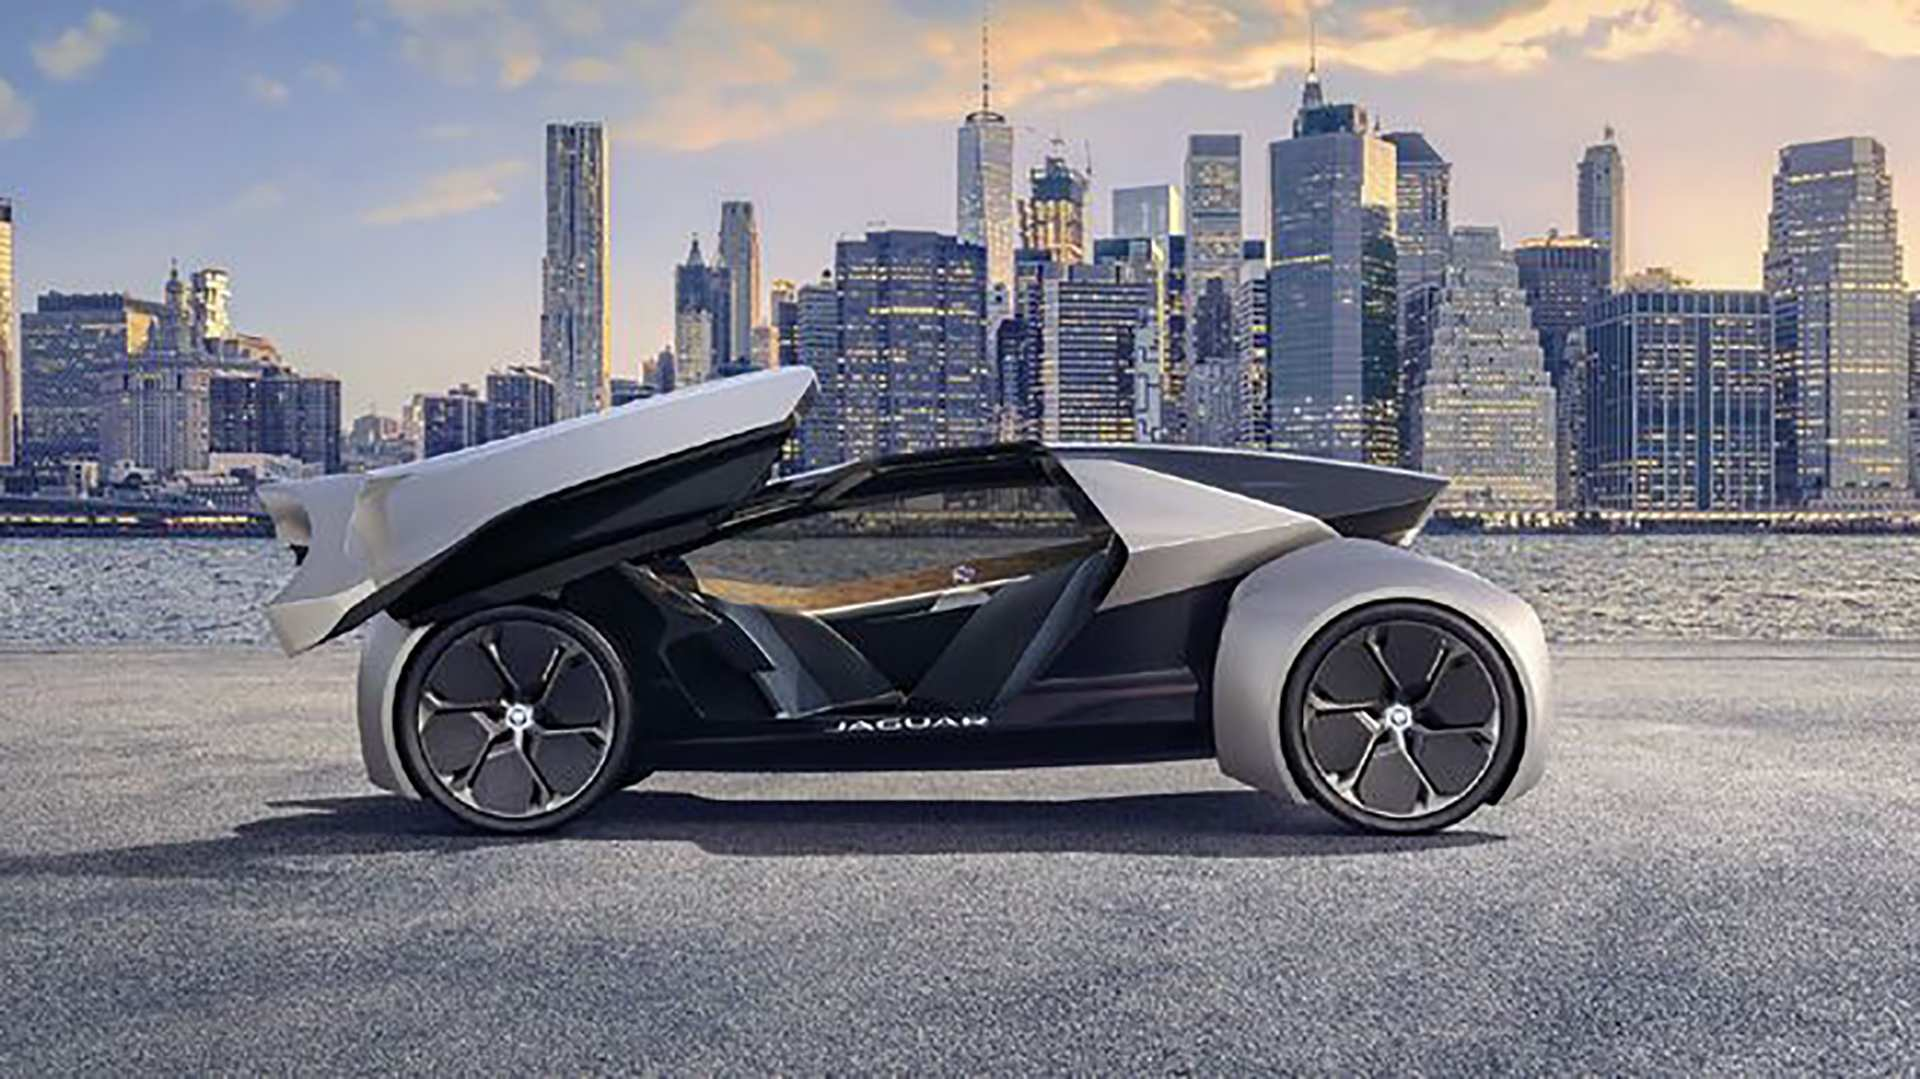 40 Concept of 2020 Jaguar Electric Rumors by 2020 Jaguar Electric